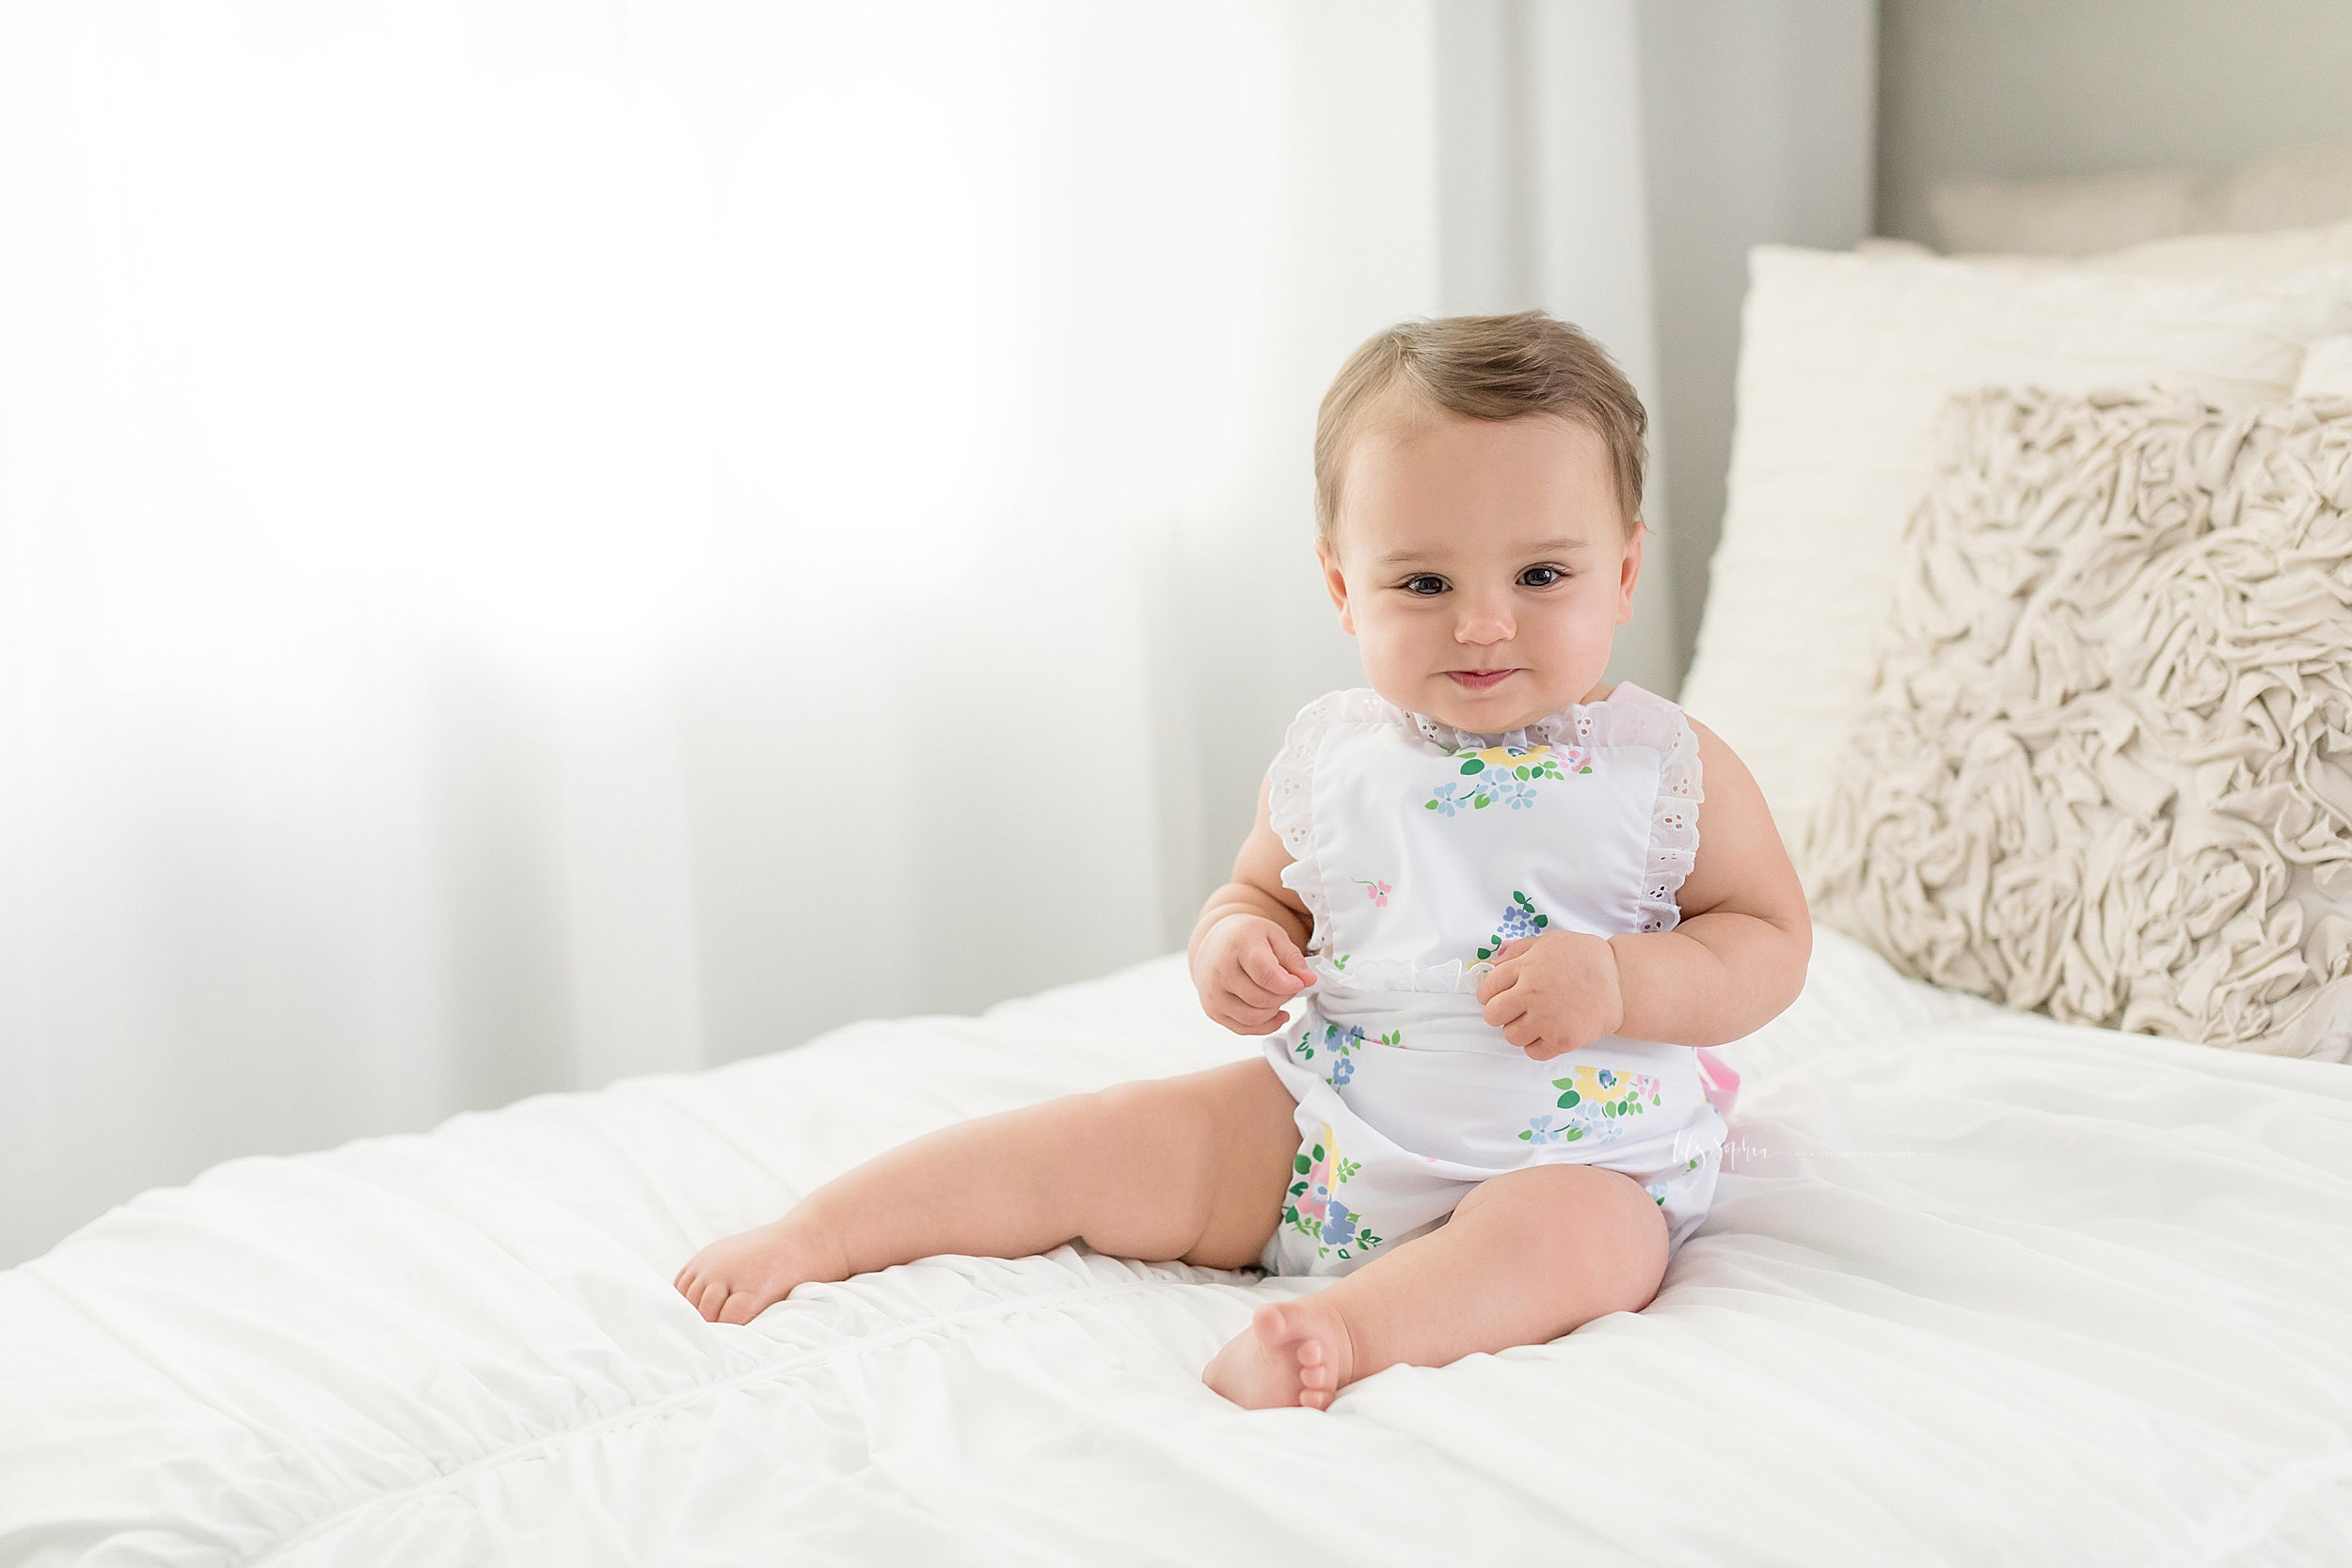 A happy one year old sits on a bed with a white spread and a cream brocade pillow.  She is barefoot and is wearing a white and pastel floral sunsuit.  She has brown hair and brown eyes.